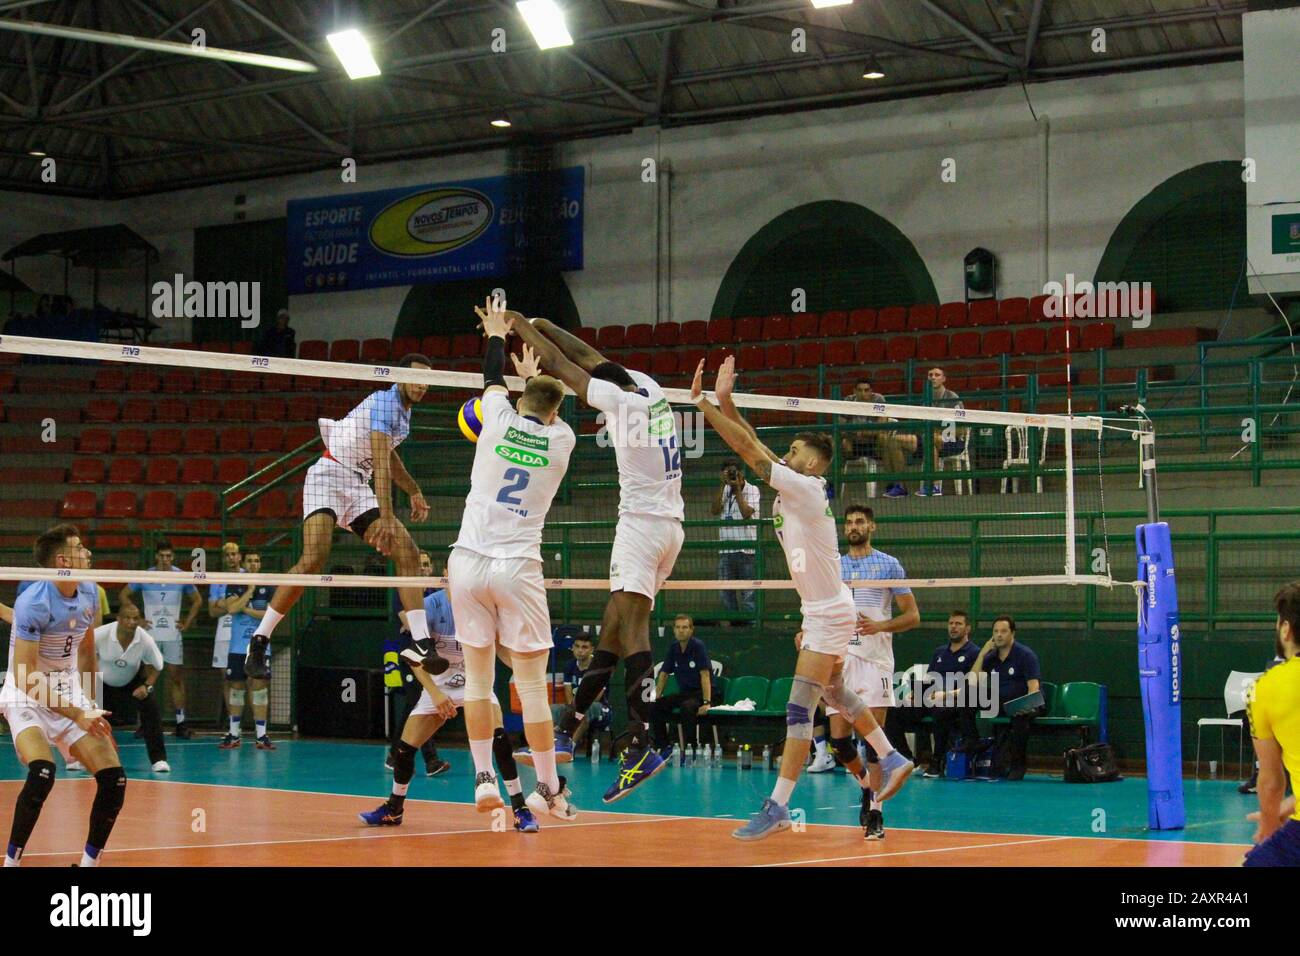 Voley High Resolution Stock Photography And Images Alamy